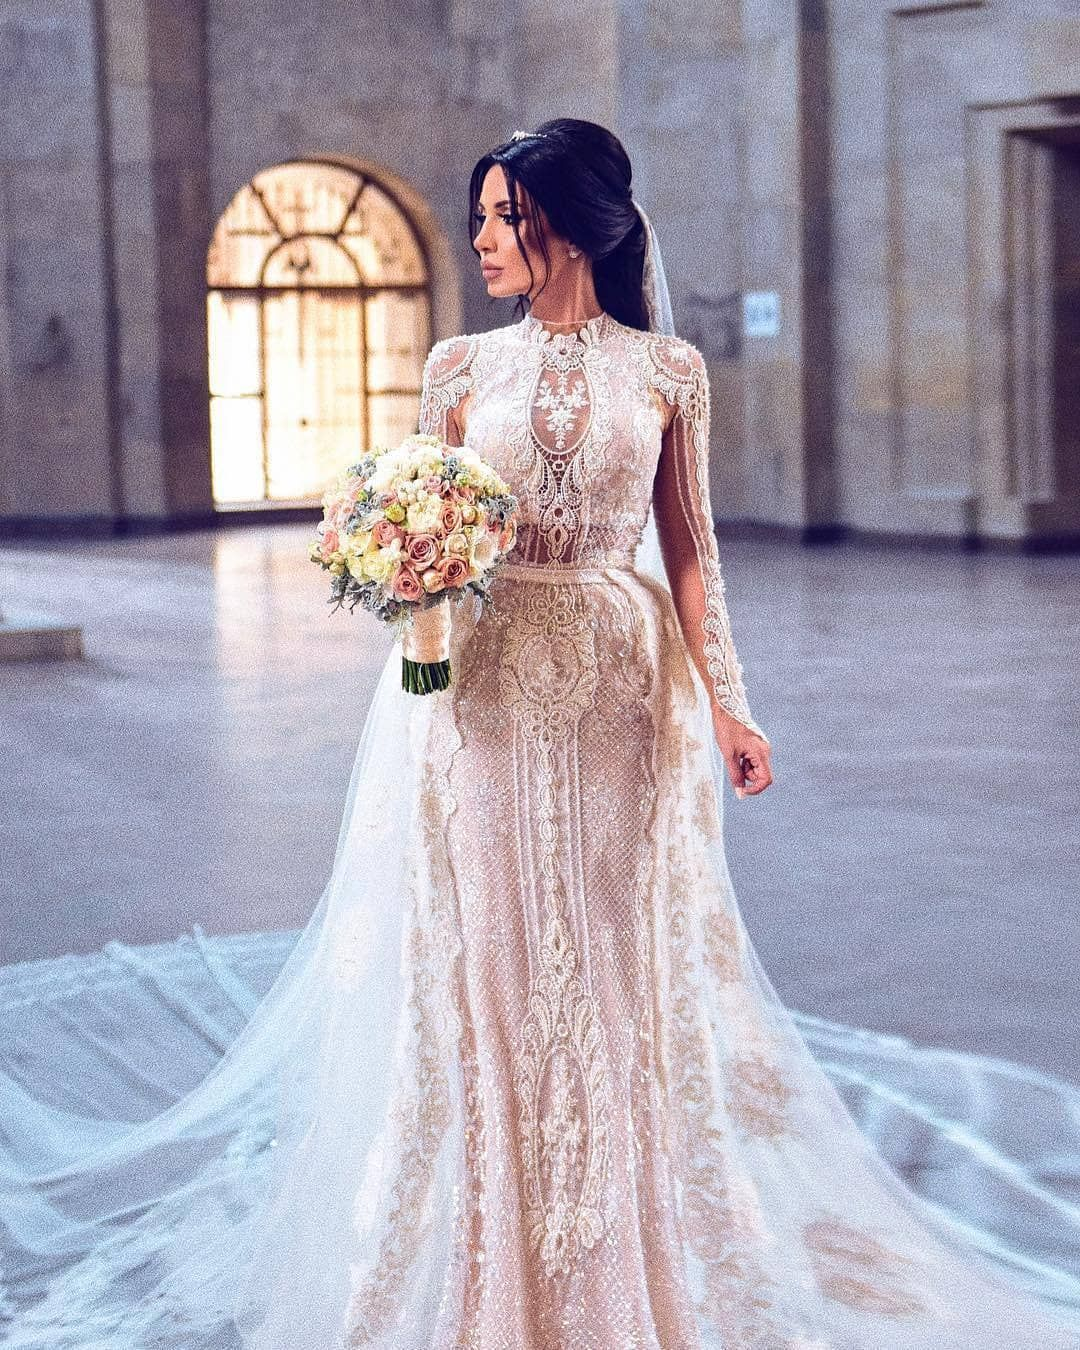 Custom Long Sleeve Wedding Gowns You Can Afford Designer Wedding Dresses Wedding Dresses Long Sleeve Wedding Gowns